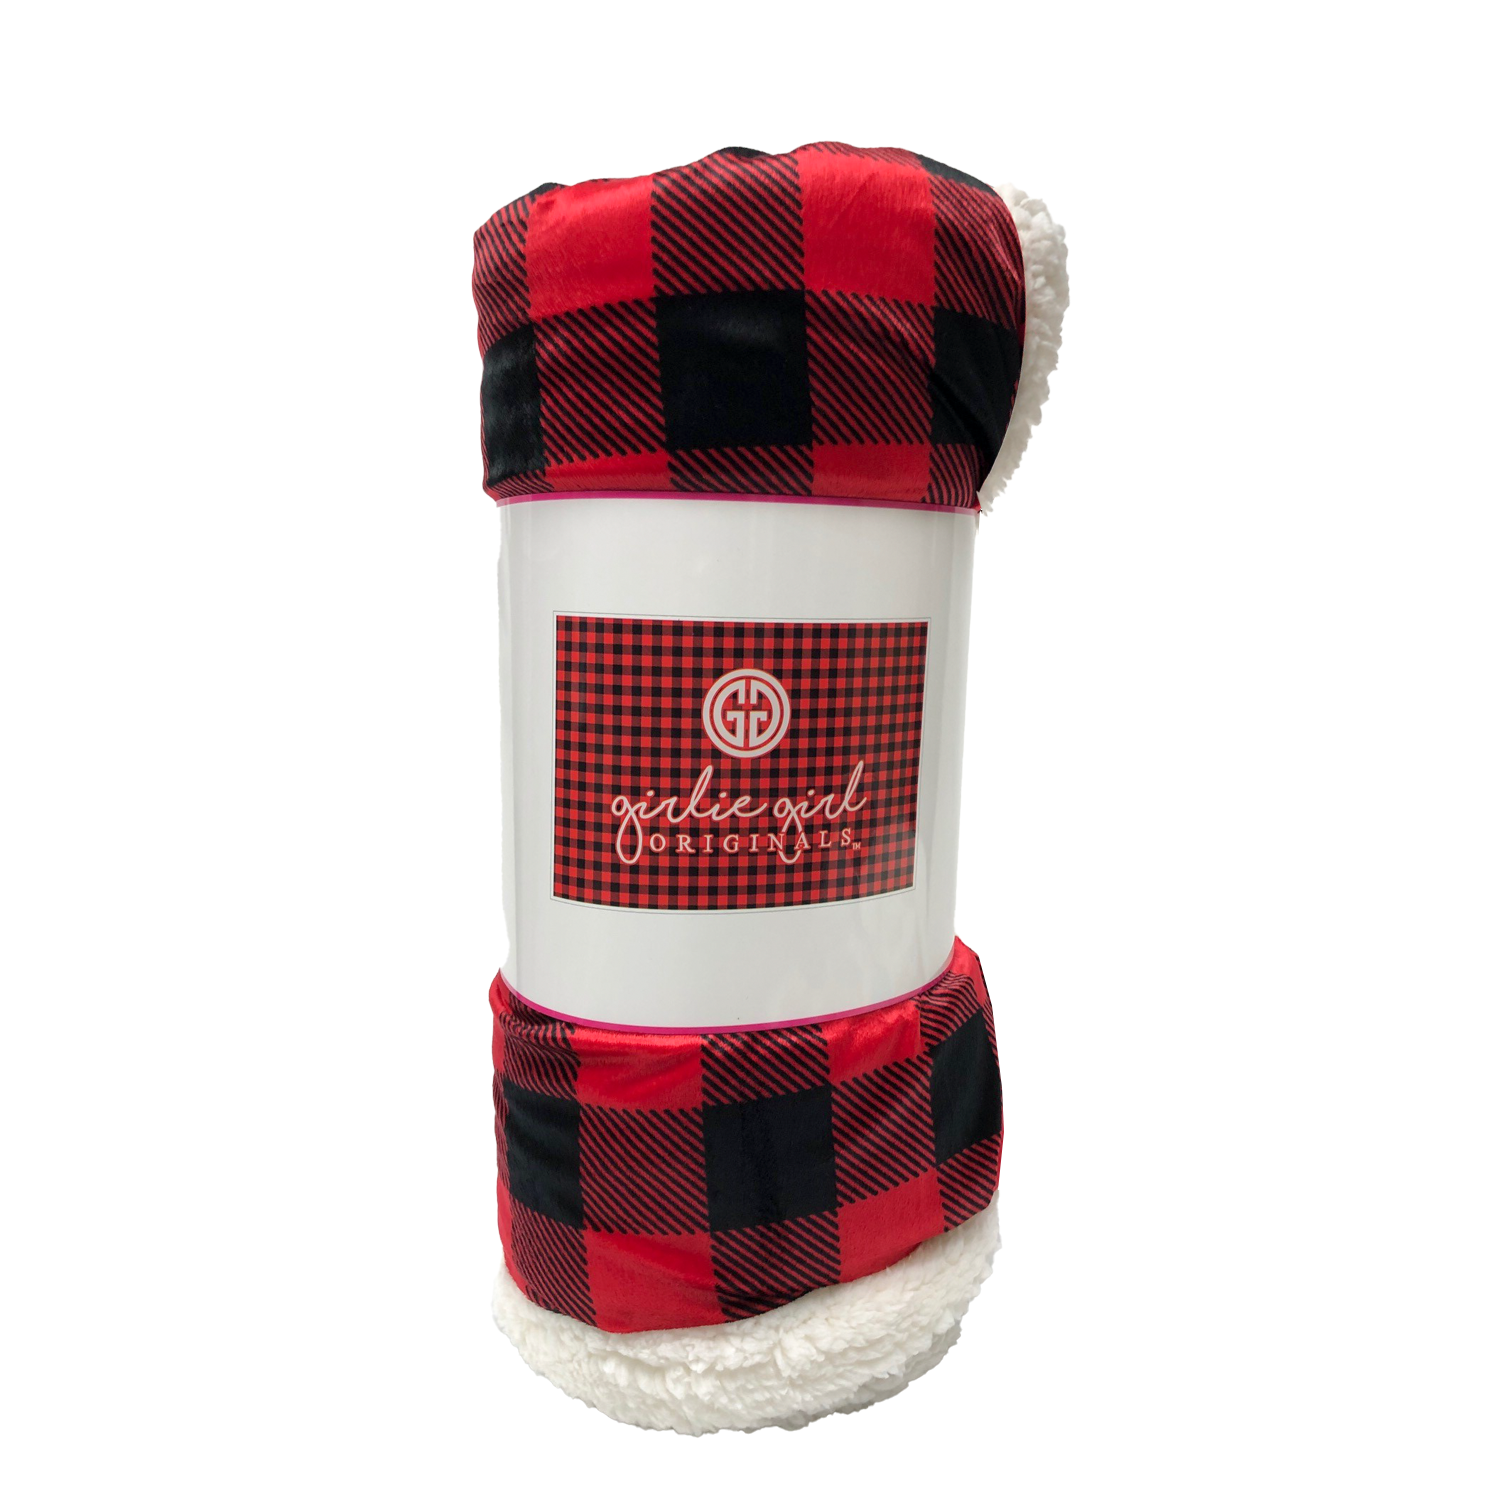 BK-3160 Buffalo Plaid Sherpa Blanket